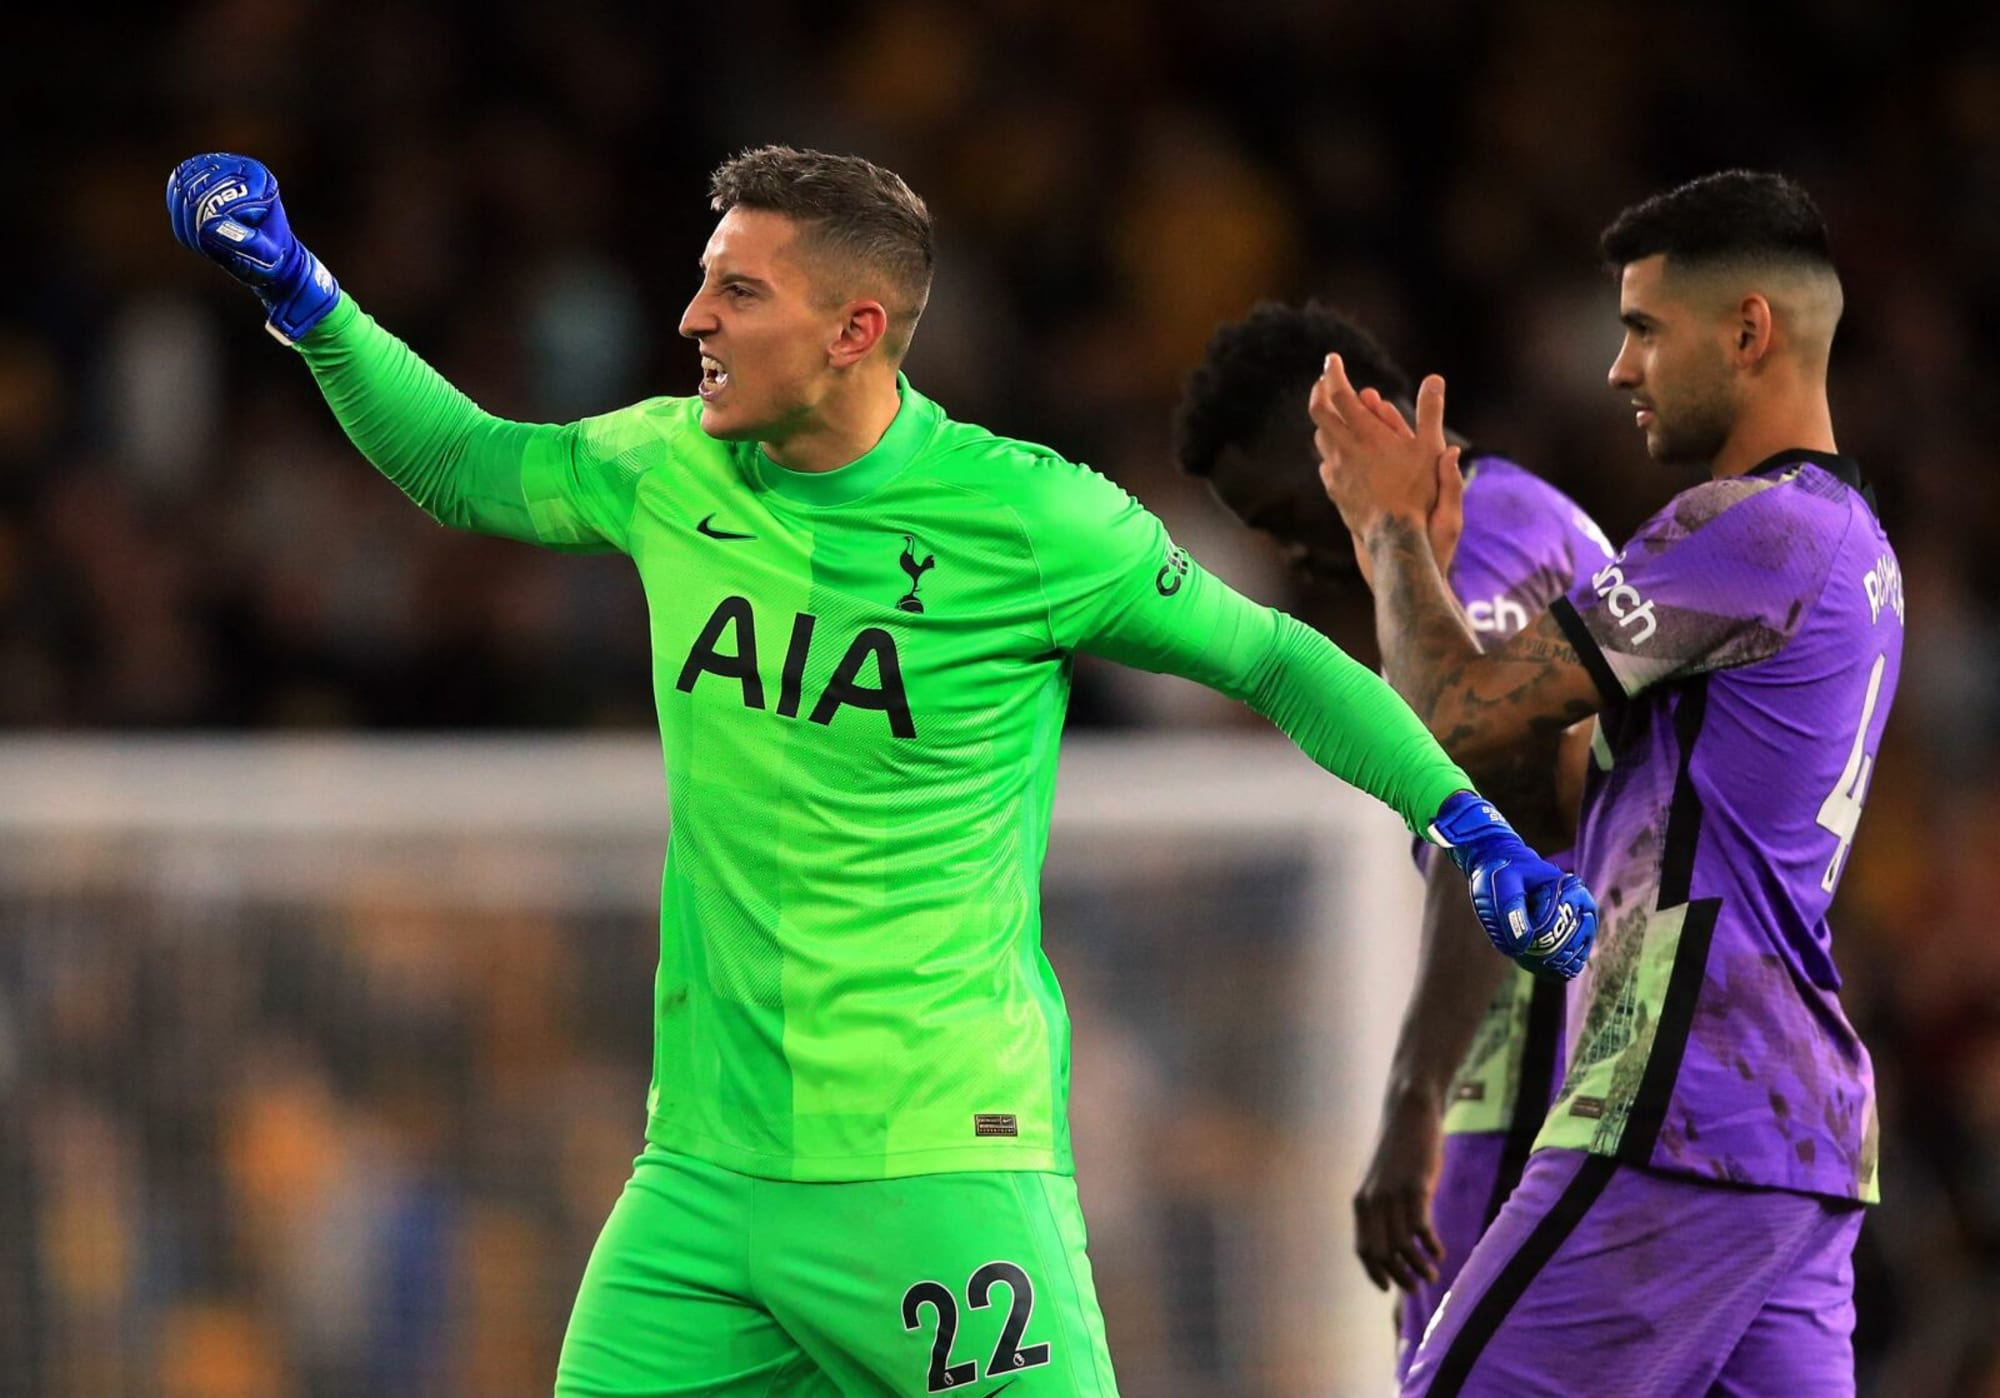 Tottenham: 12th man made a difference in Spurs advancing past Wolves